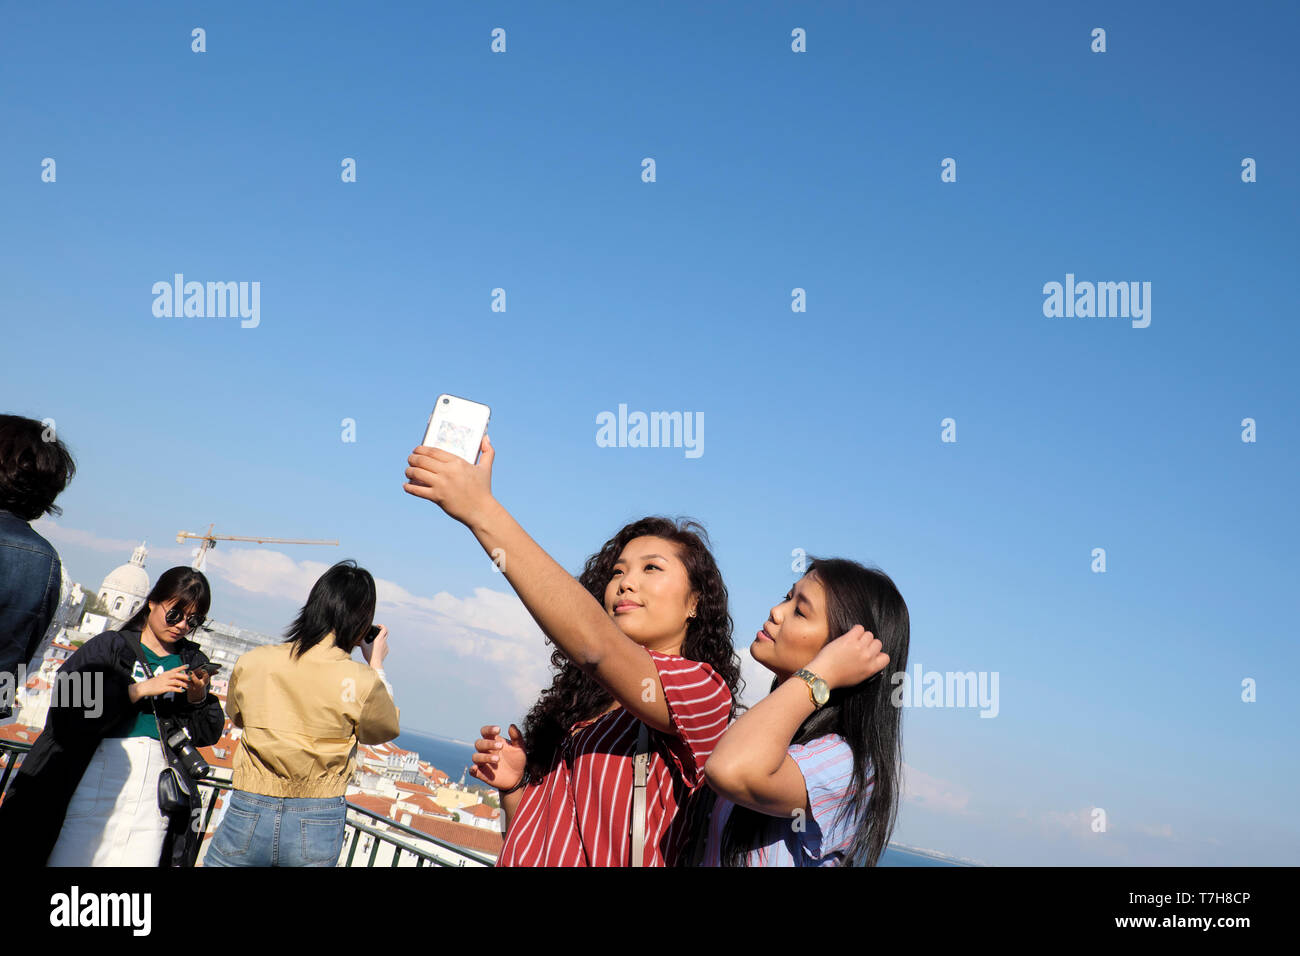 Beautiful young woman with friend taking selfie with mobile phone with background of Alfama district of Lisbon in Portugal Europe EU  KATHY DEWITT Stock Photo